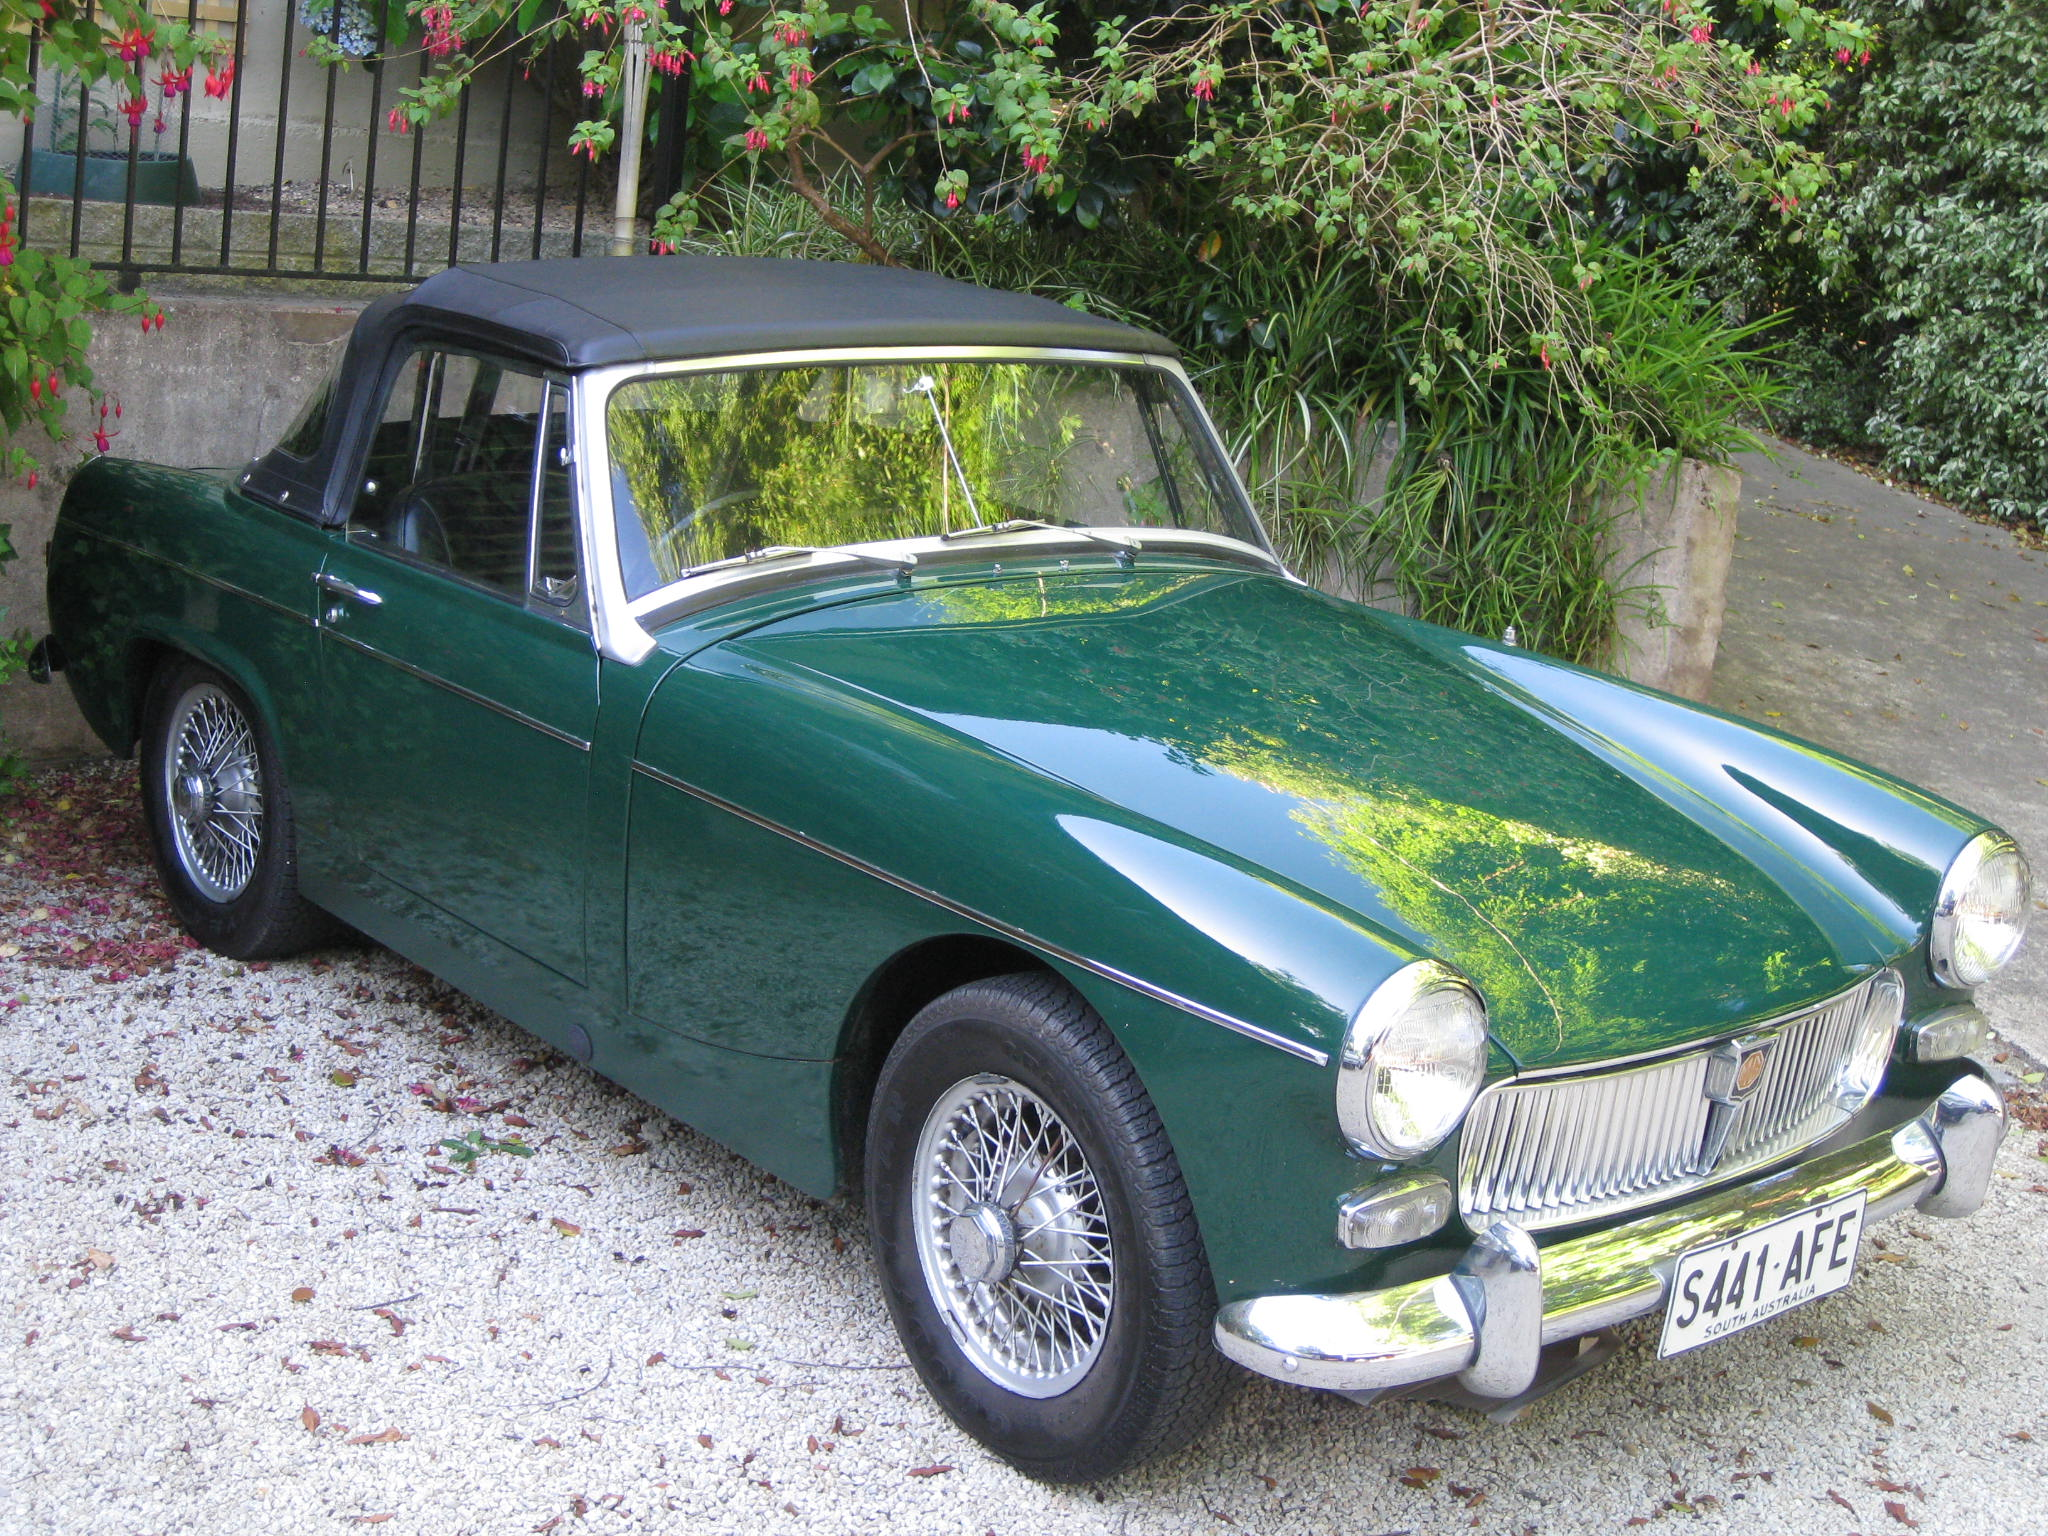 Mg midget used car value, hot thai bar girls